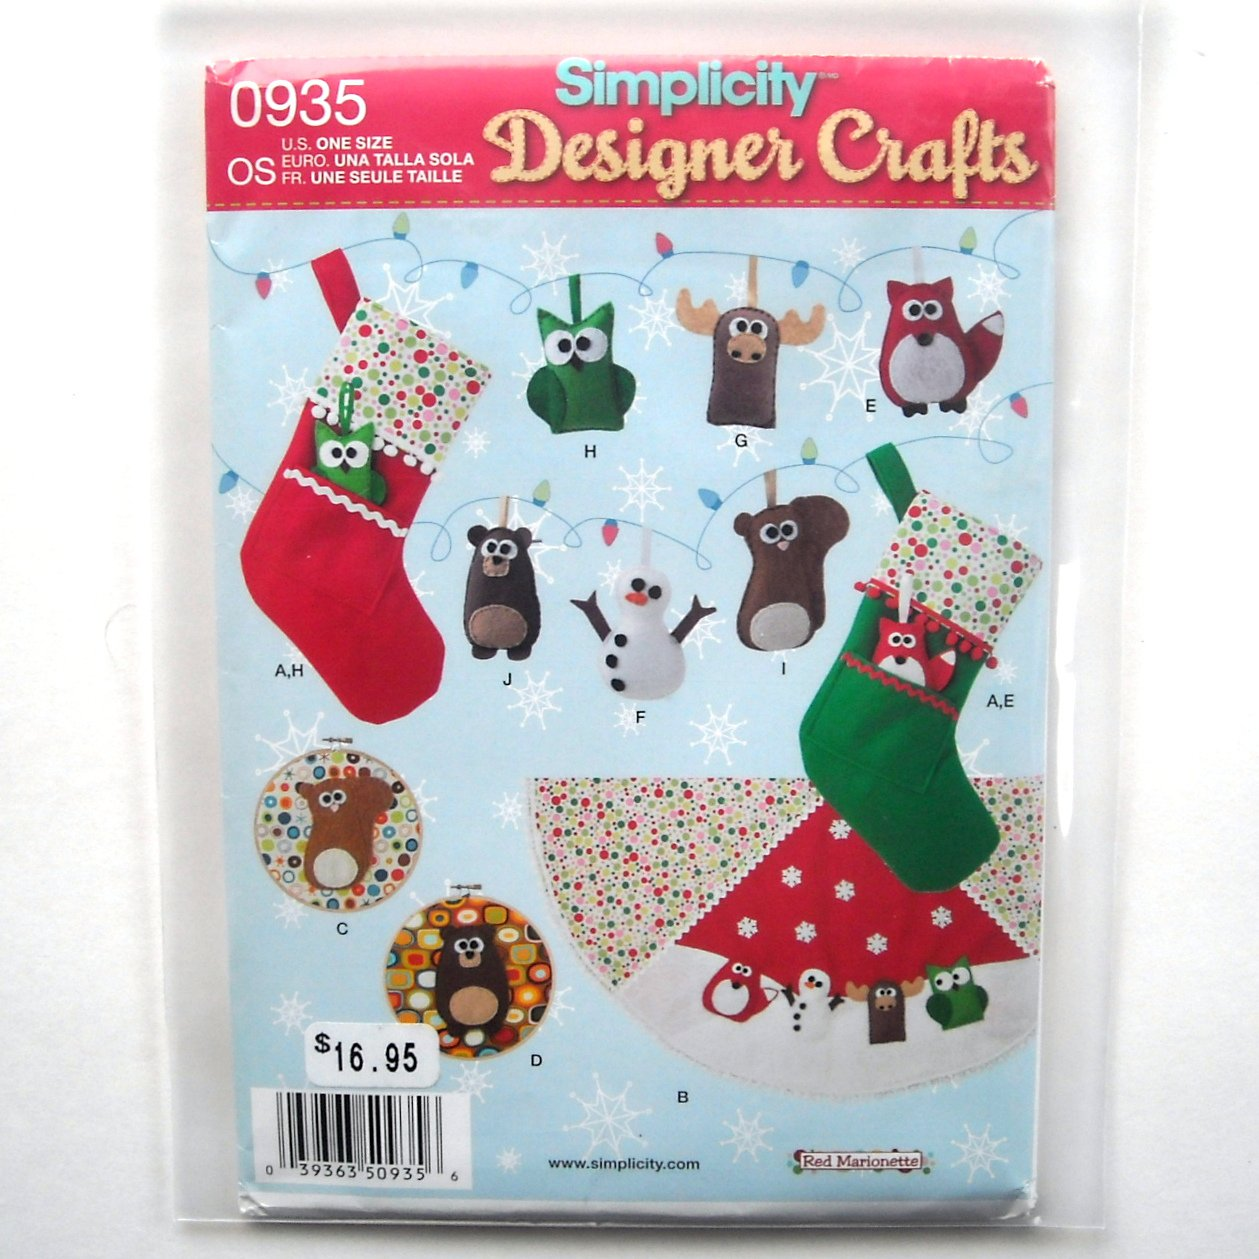 Felt Ornaments Stocking Tree Skirt Wall Hangings Simplicity Sewing Pattern 0935